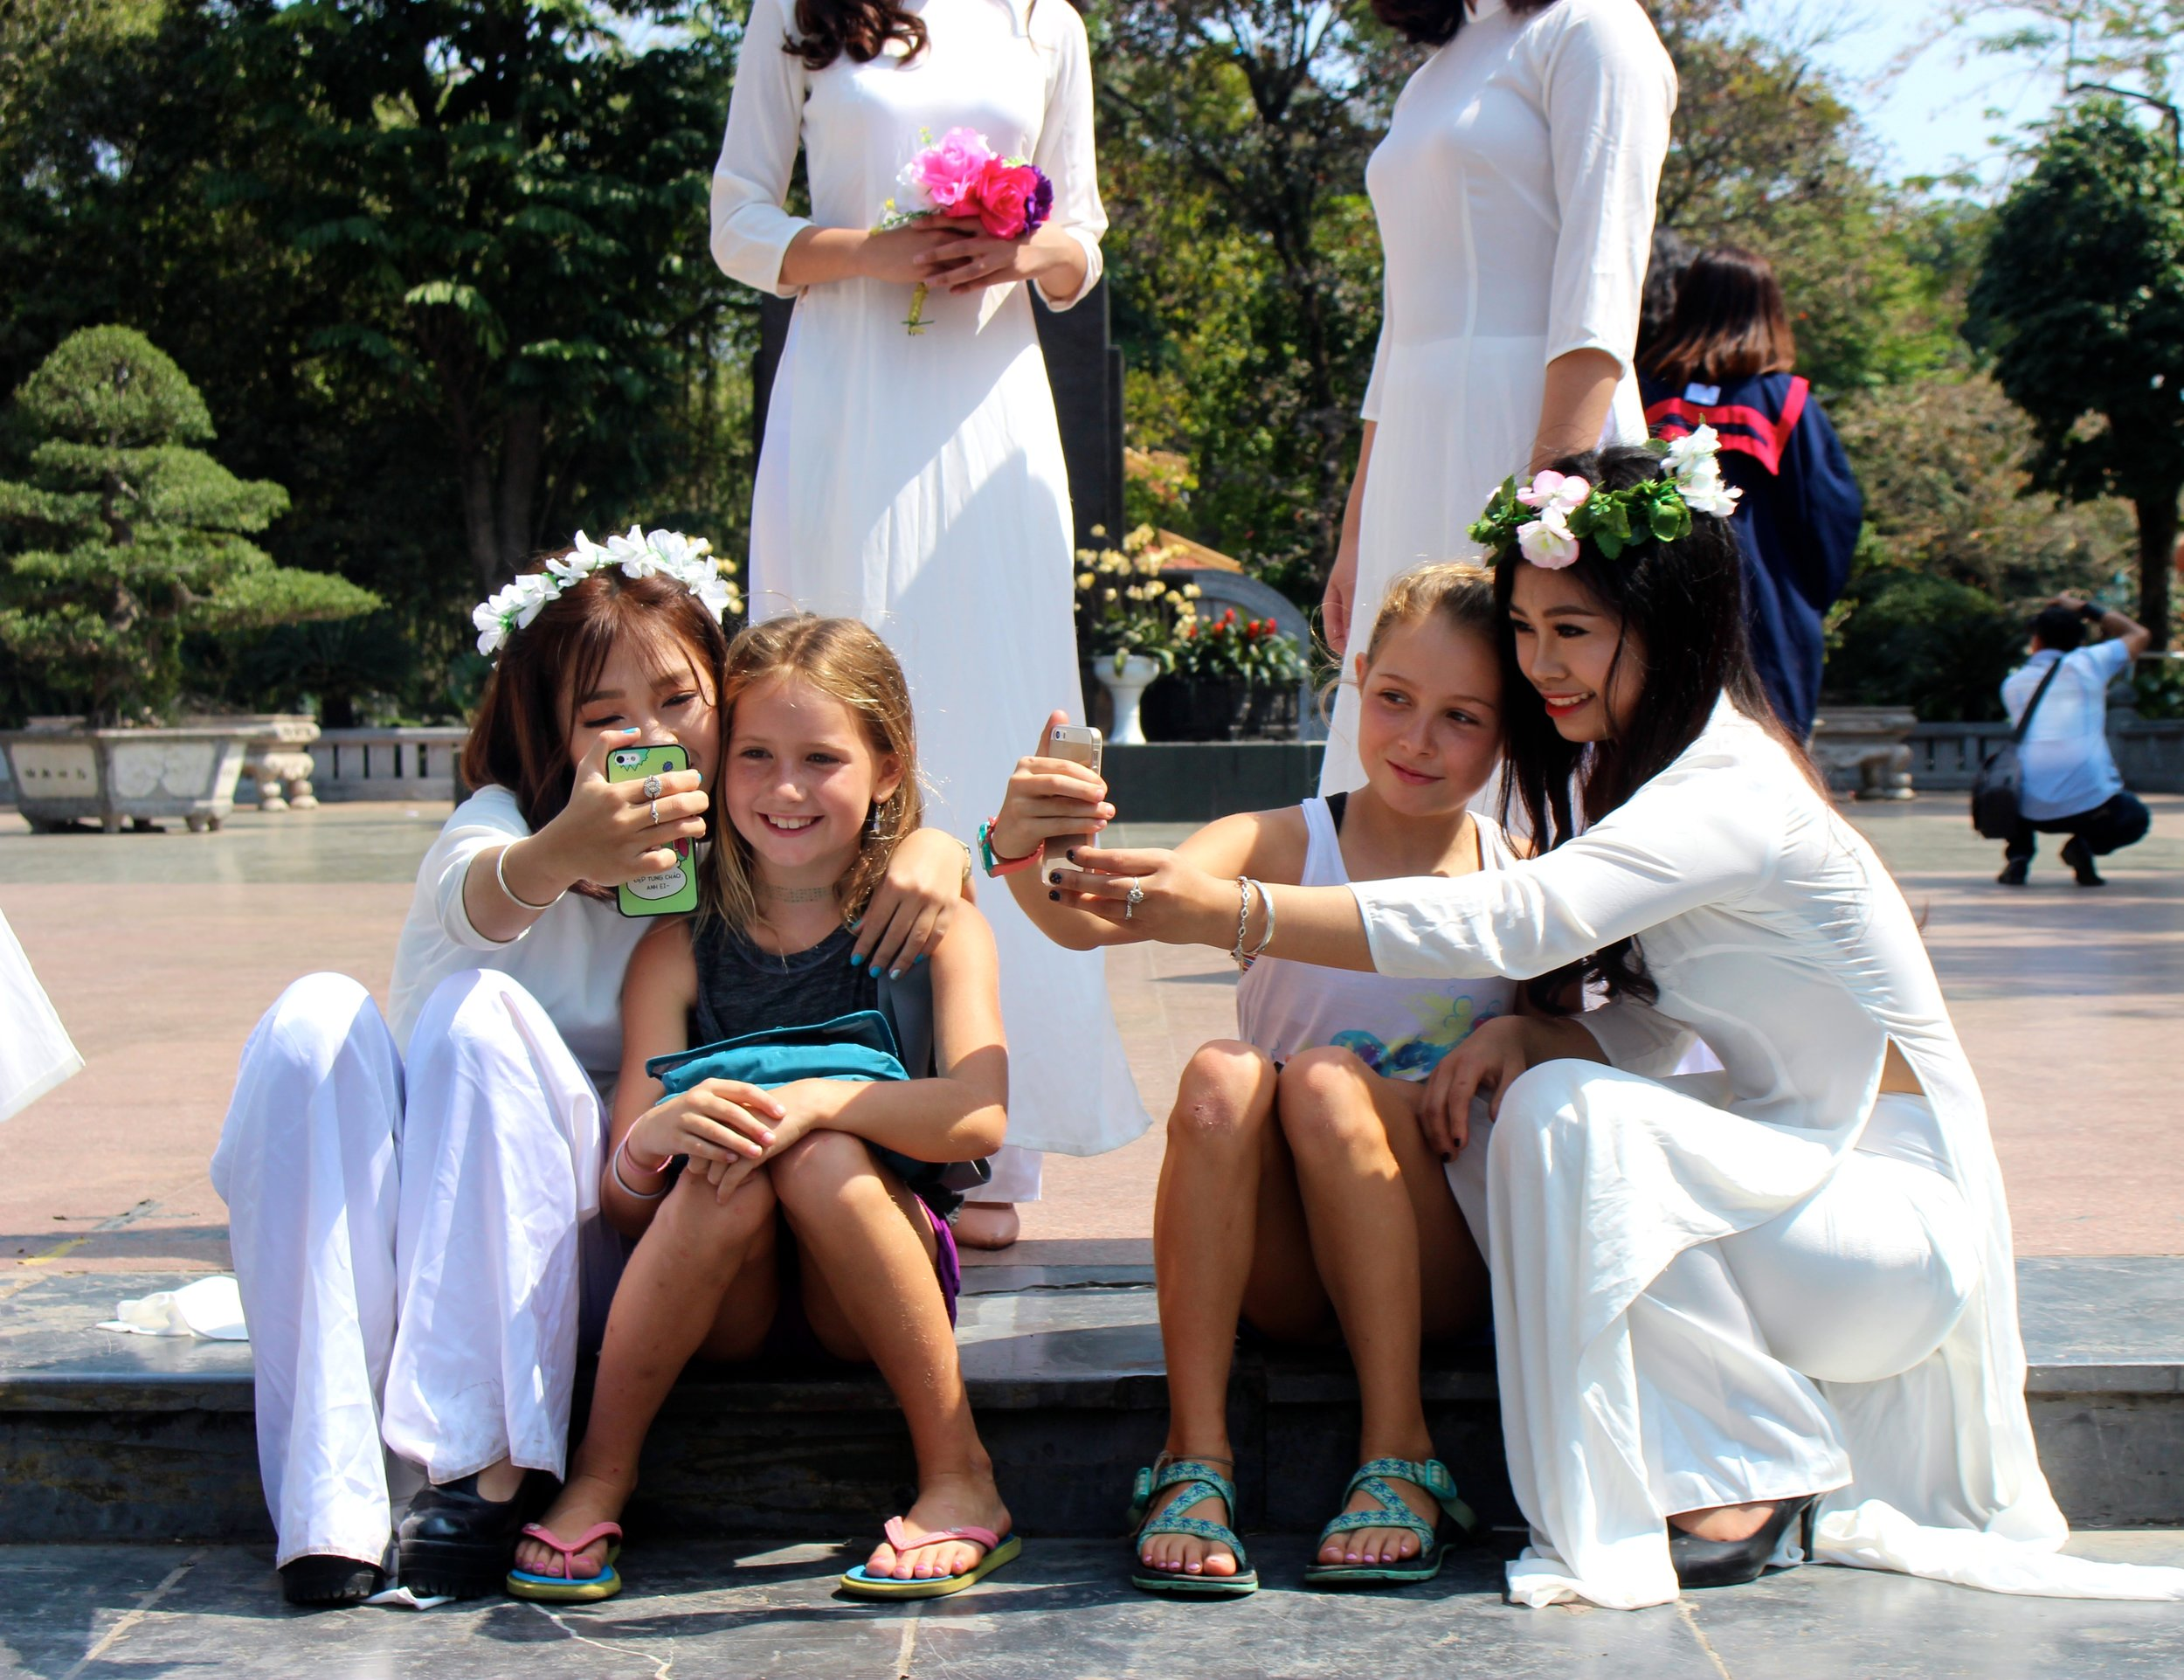 While out roller blading and enjoying the beautiful weekend weather at the Hanoi city center square, the girls quickly became fan favorites of the local High School graduating class.Lots of laughs and selfies were shared with this group of local Vietnamese girls.